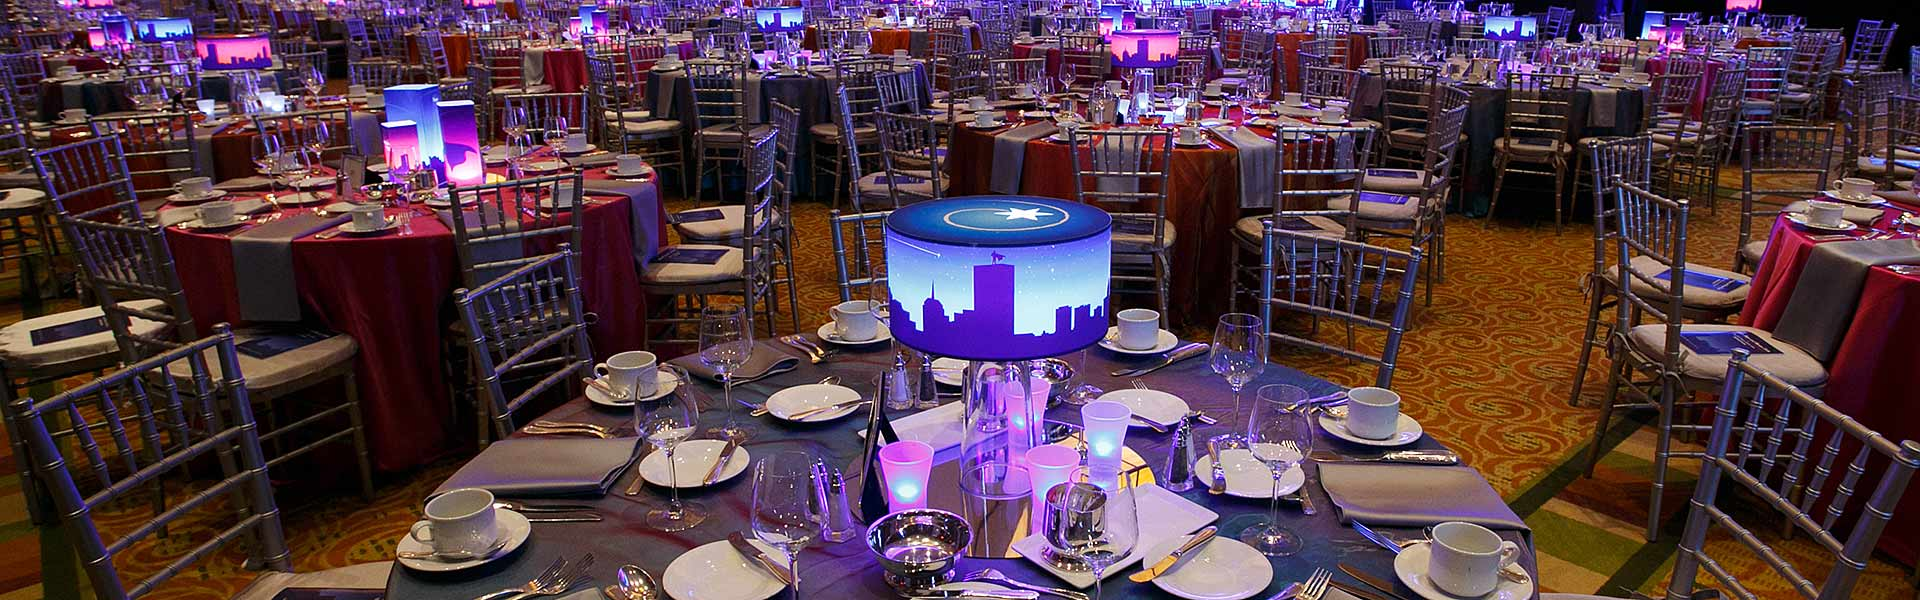 Custom Designed Lamp Shades for Special events